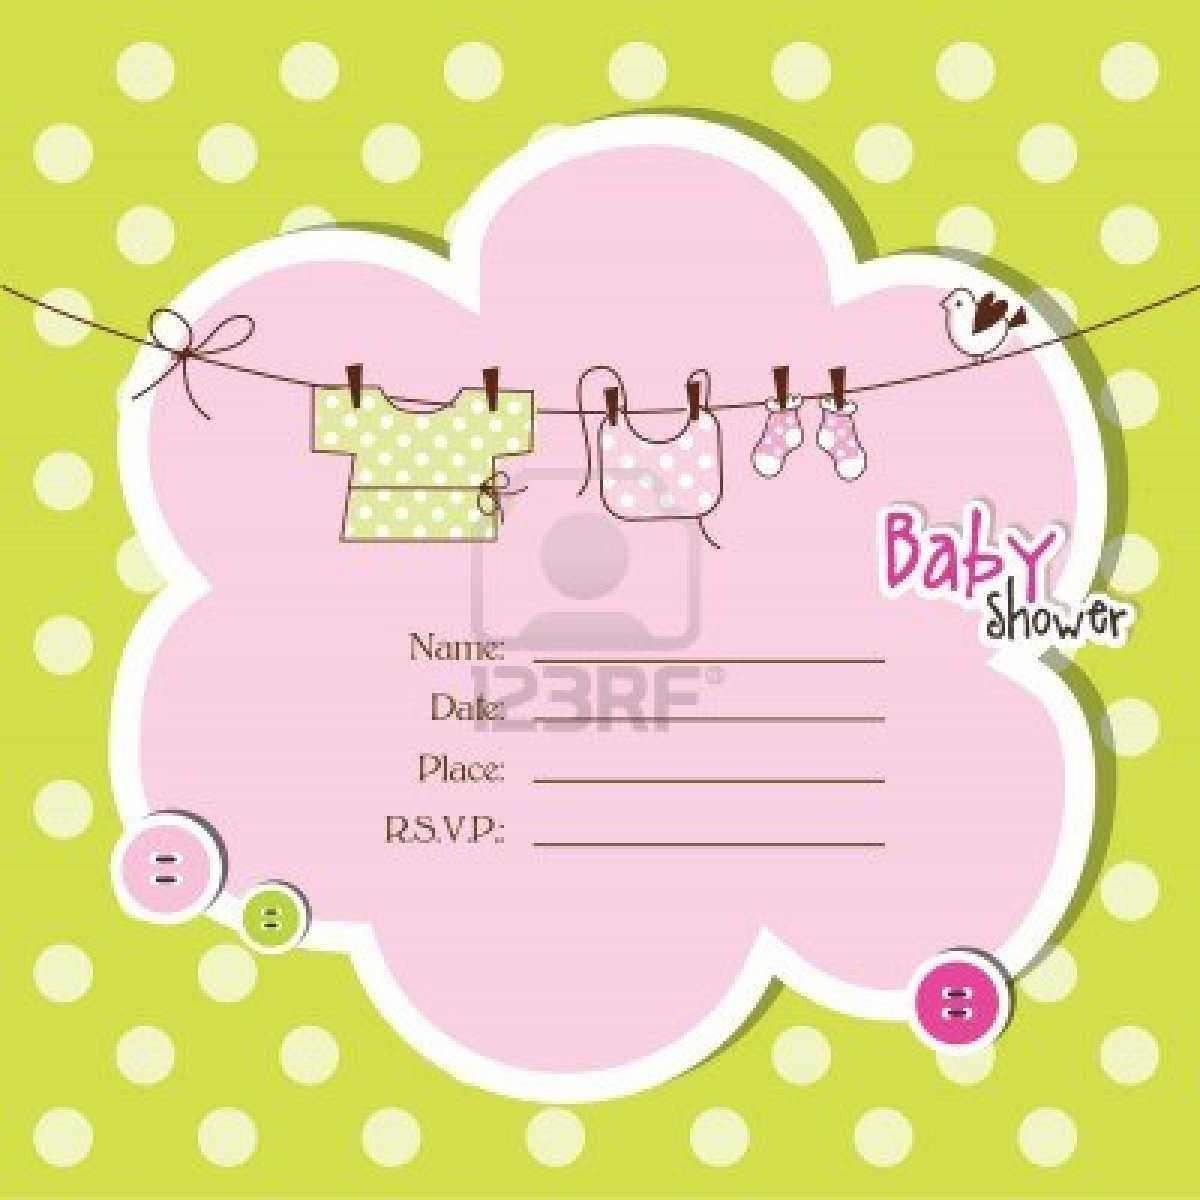 Free Baby Shower Invitations | Free Printable Baby Shower Throughout Free Baby Shower Invitation Templates Microsoft Word